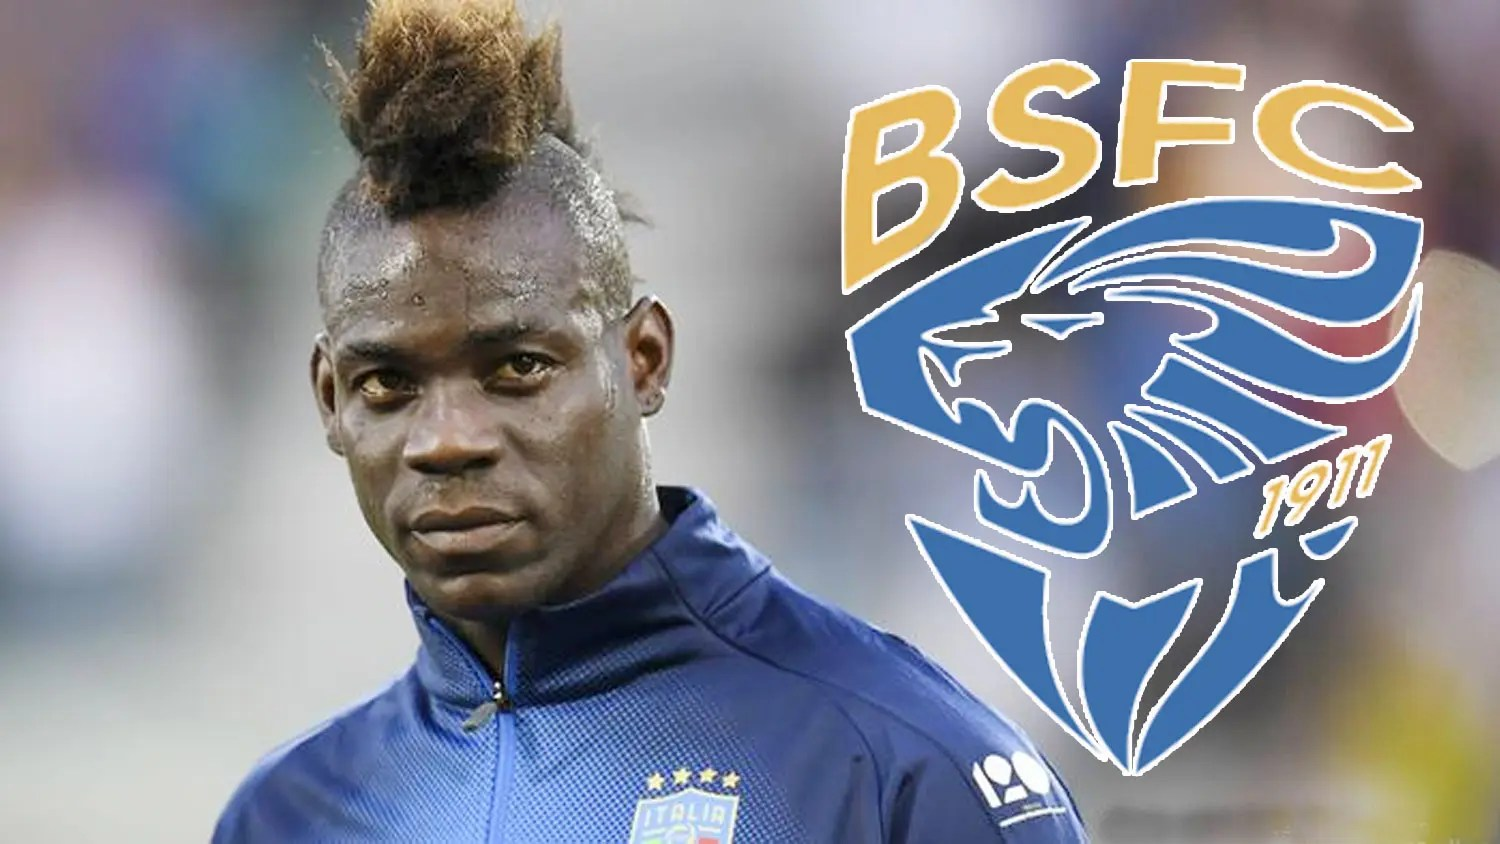 Mario Balotelli finally joins Brescia after spell with Marsielle